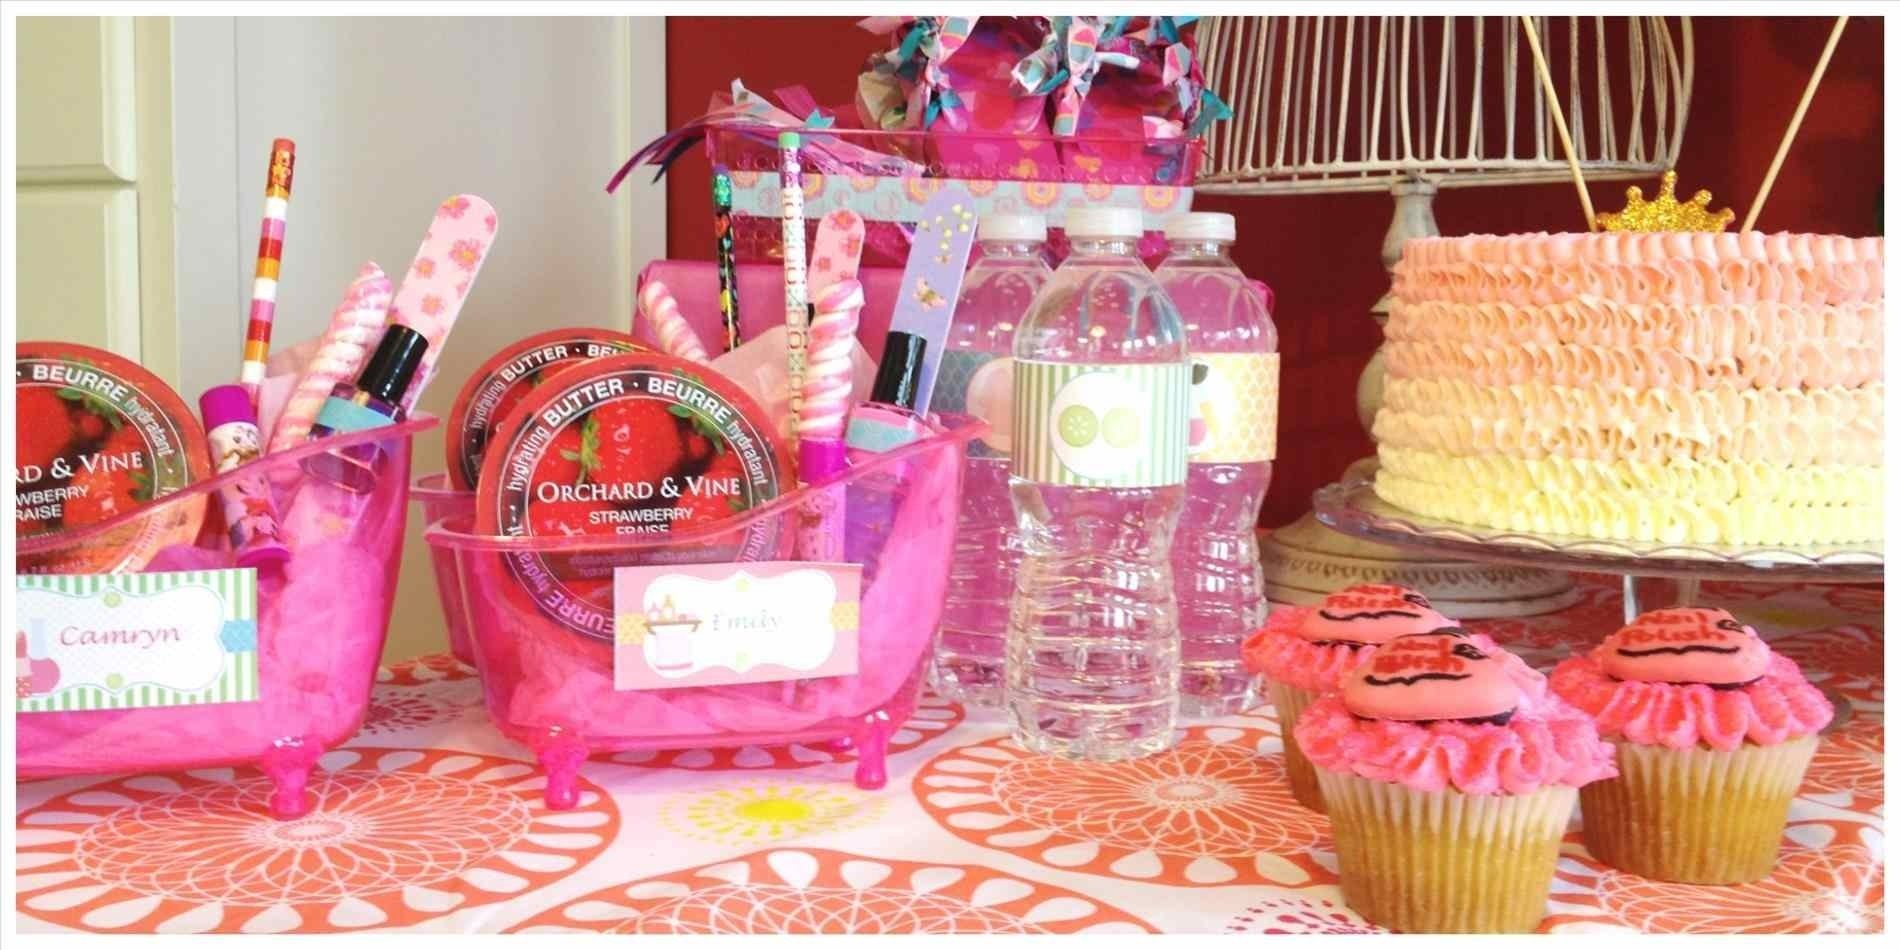 10 Unique 9 Yr Old Girl Birthday Party Ideas best spa birthday party ideas for 9 year olds girl on jpg siudy 2